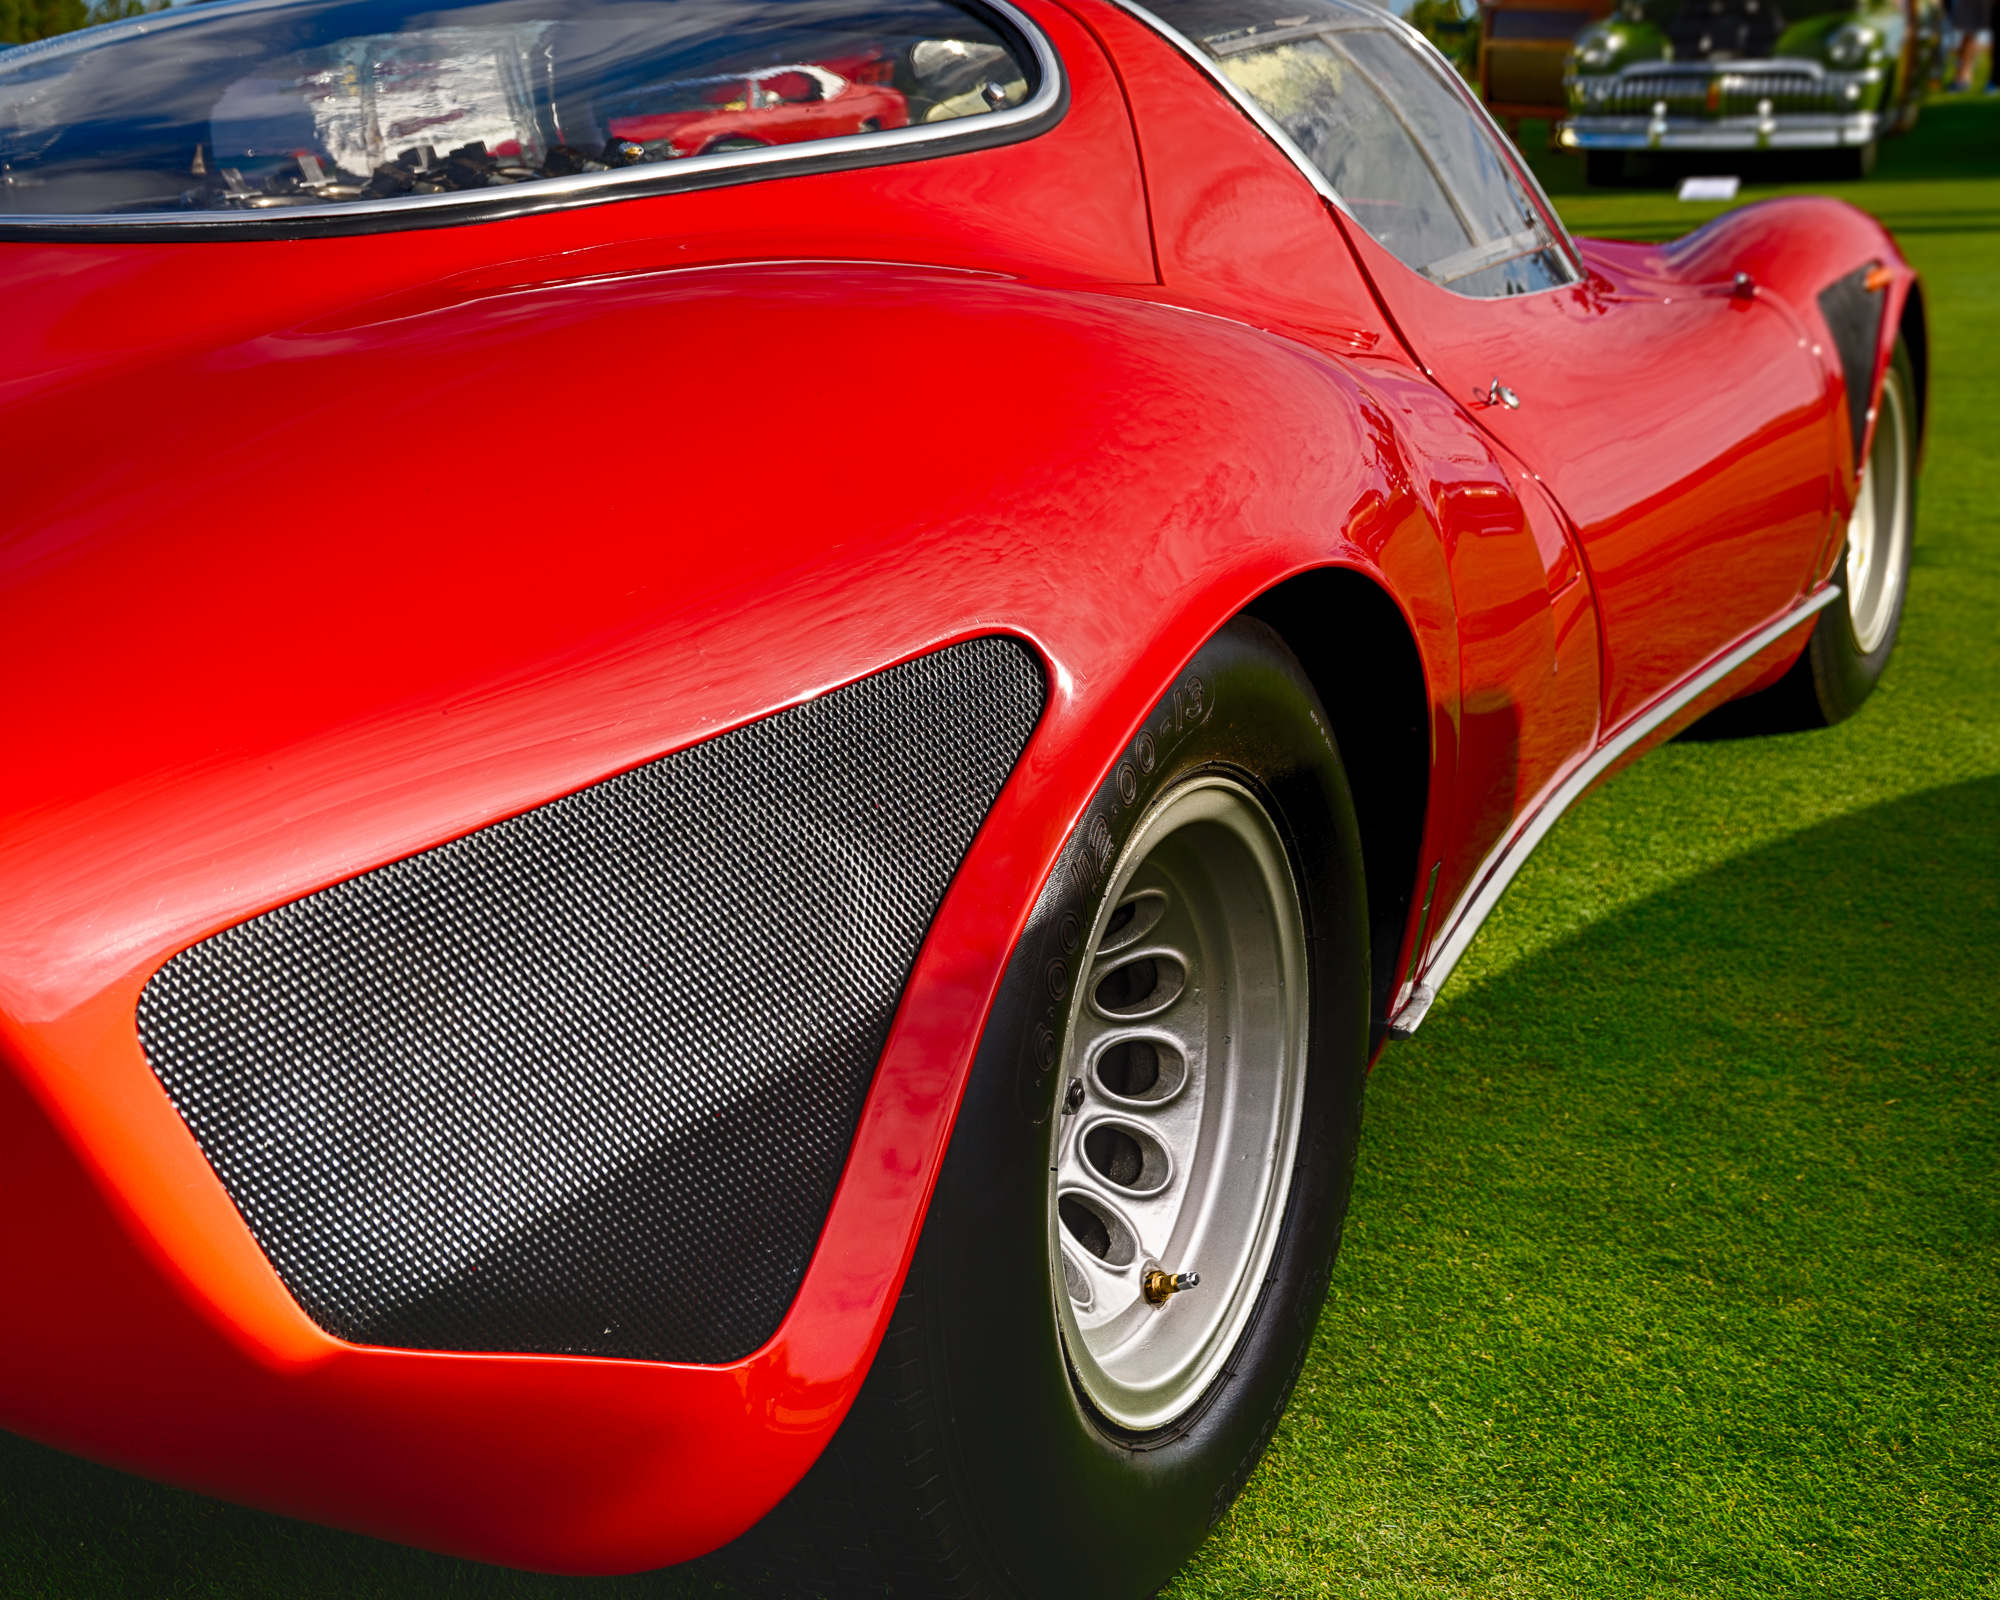 Some of the finest curves in automotive design history.